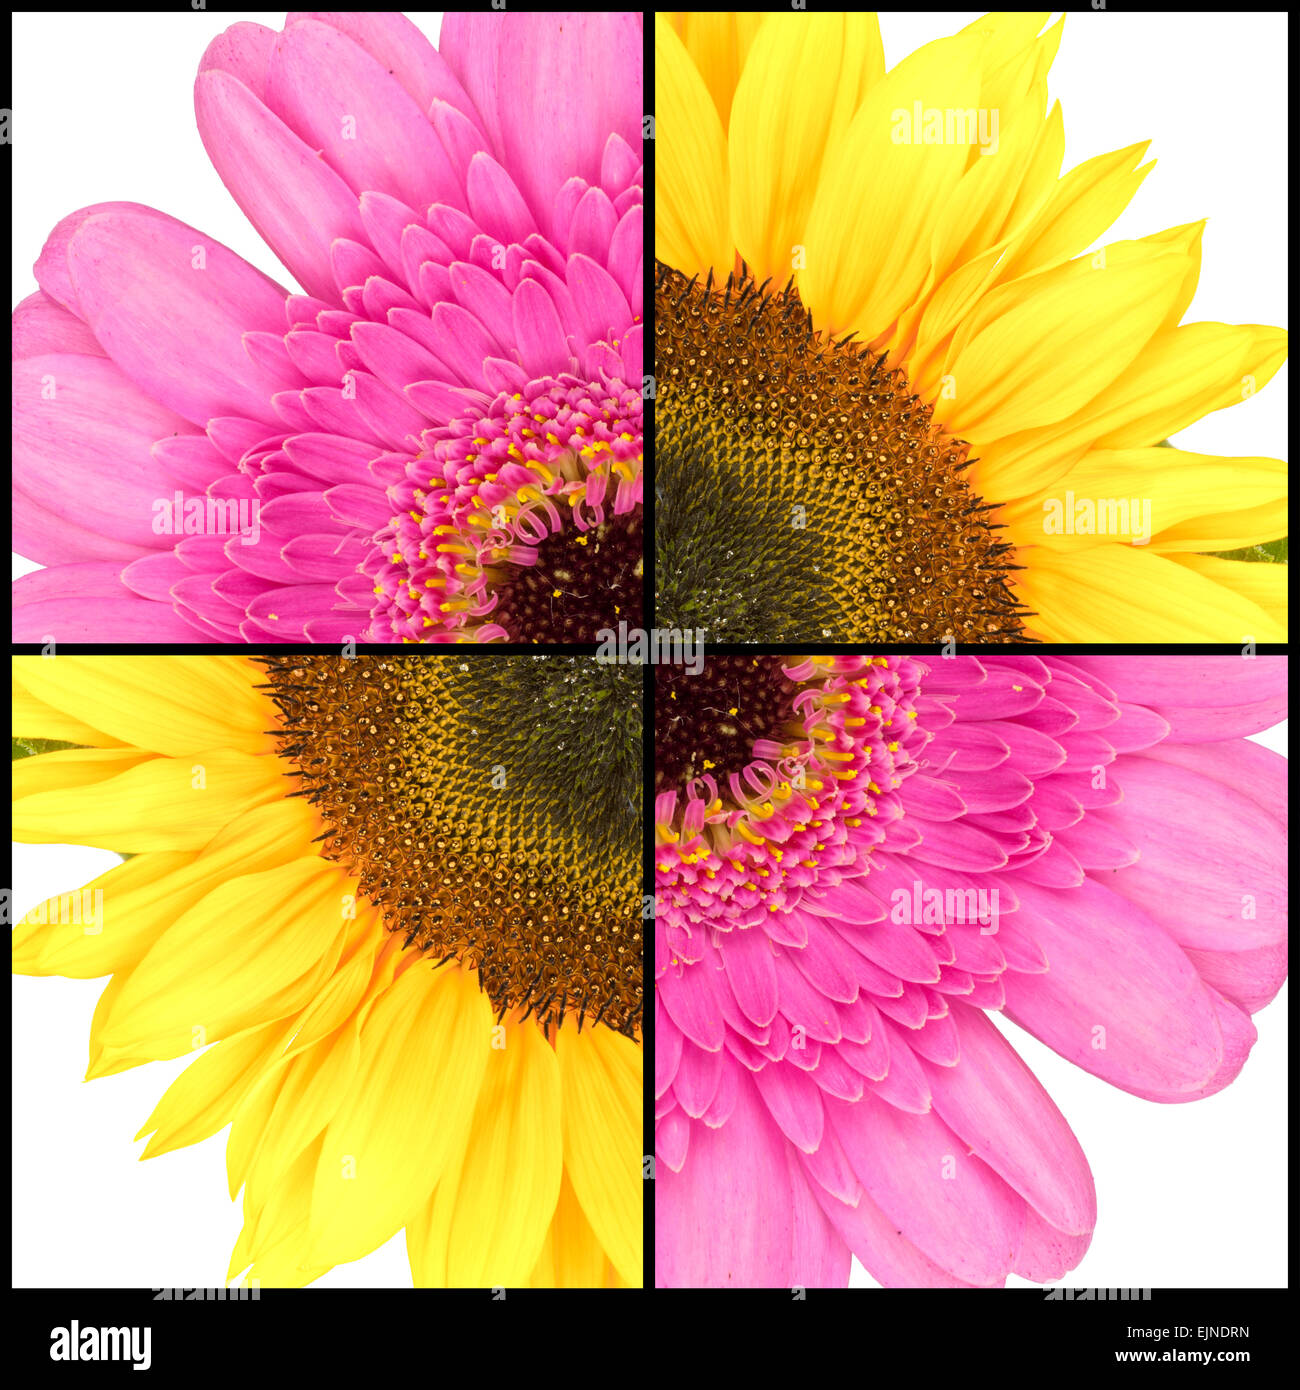 Collage of pink Gerbera and yellow Sunflower in a square frame - Stock Image